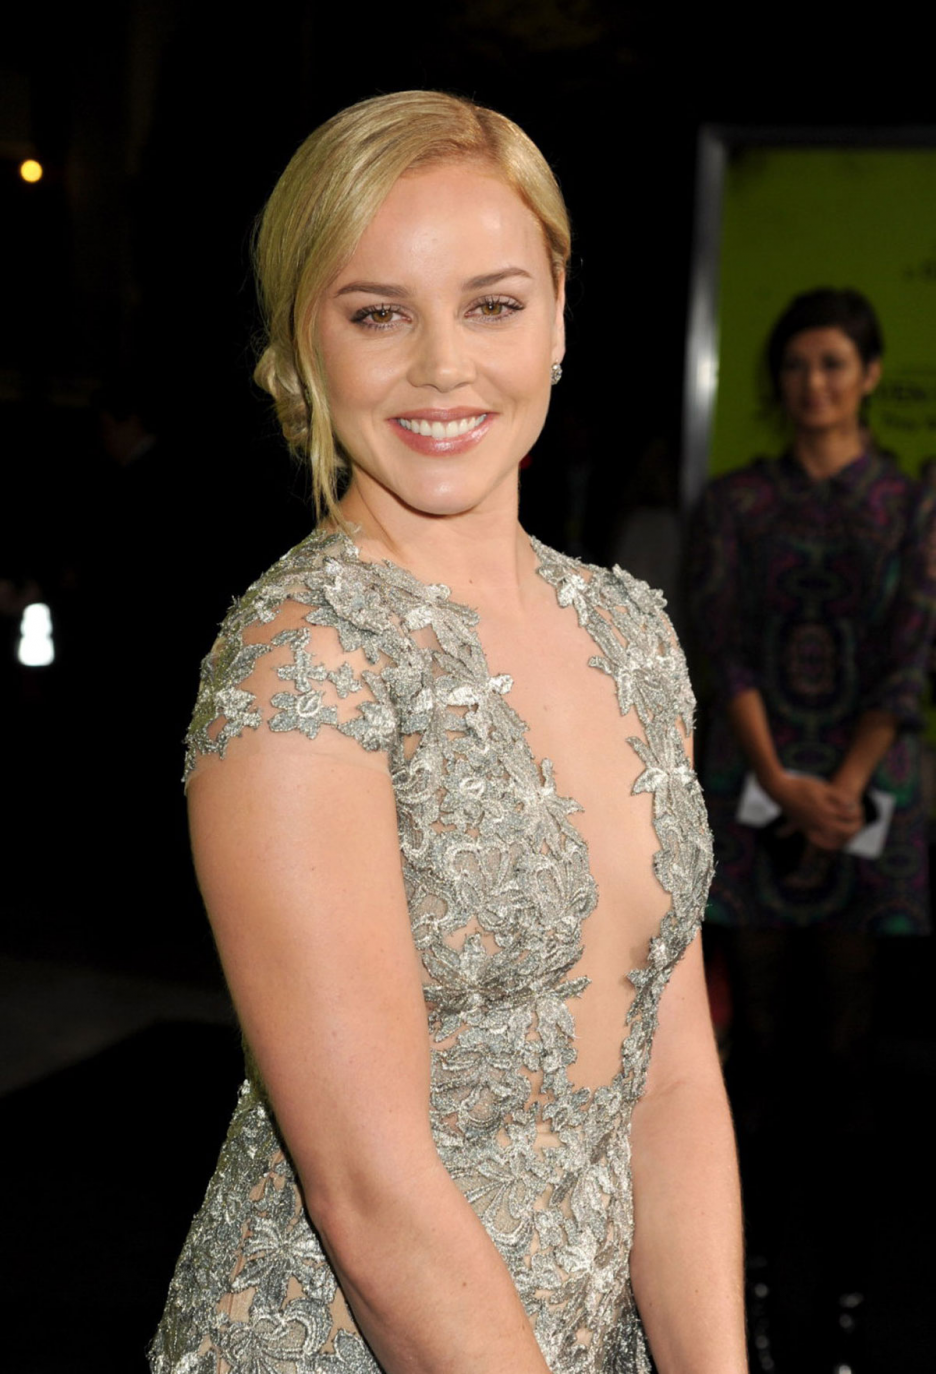 STAR CELEBRITY WALLPAPERS: Abbie Cornish HD Wallpapers